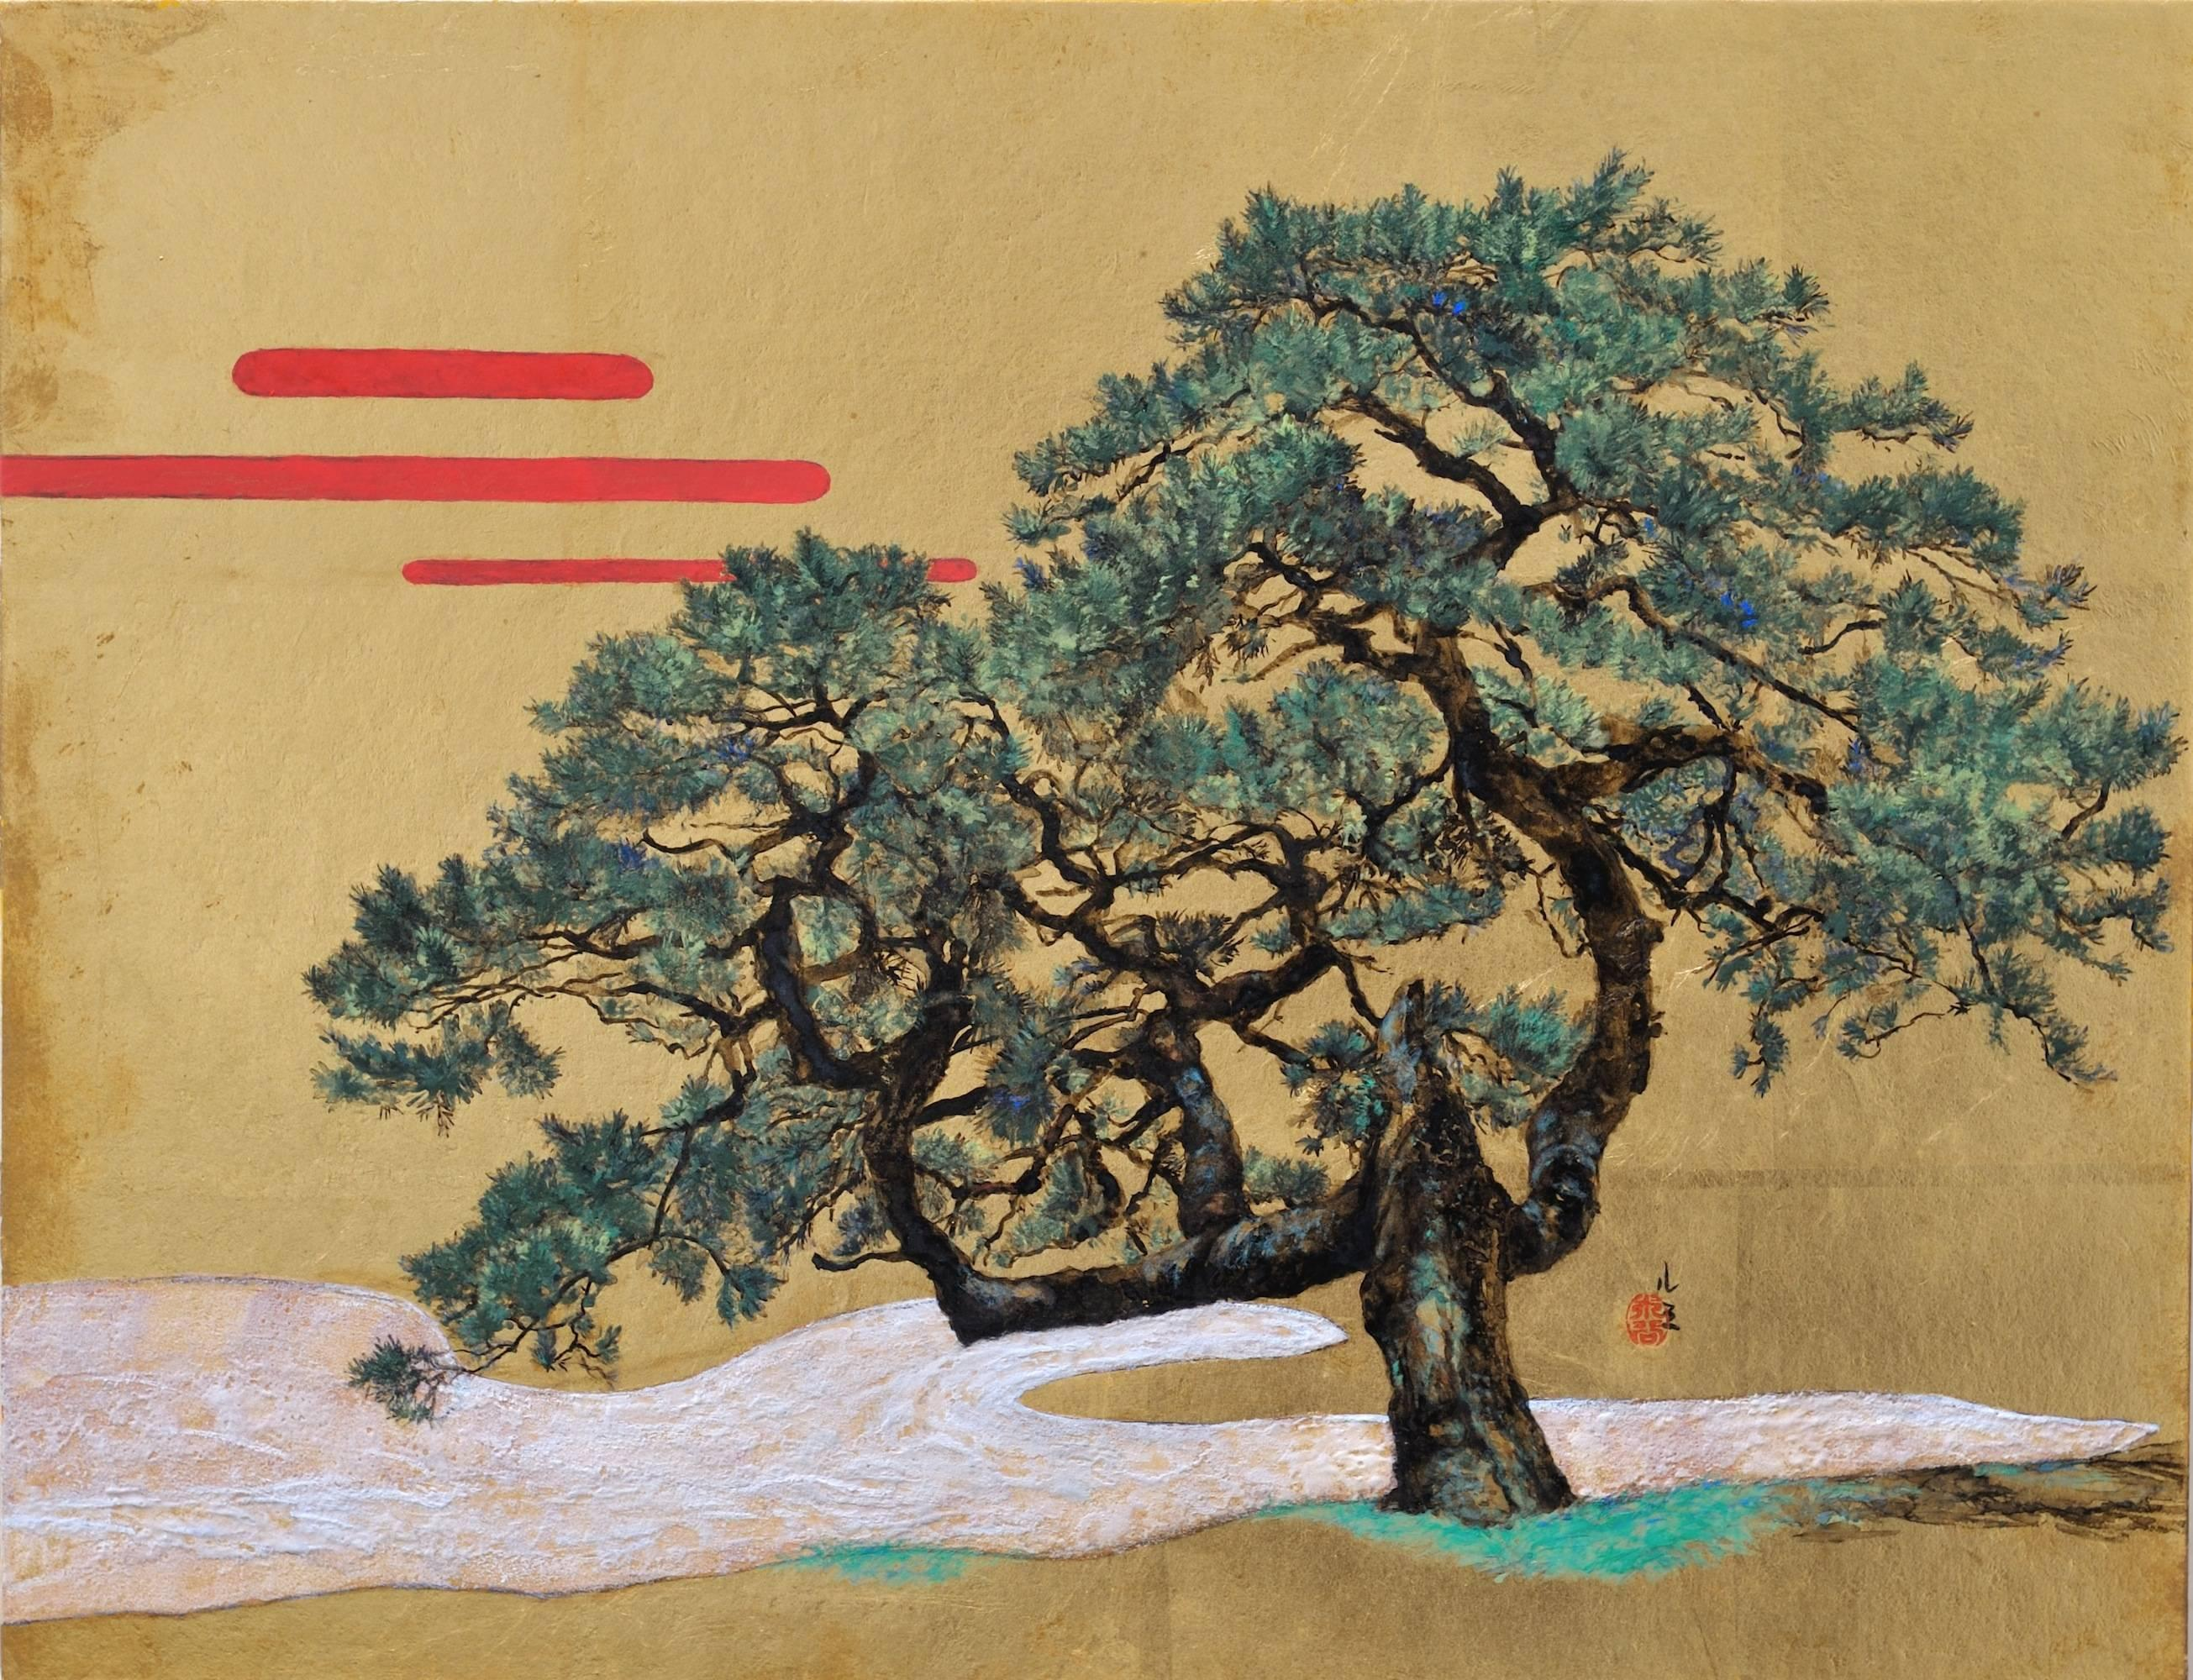 Memory - Contemporary painting, Japanese landscape